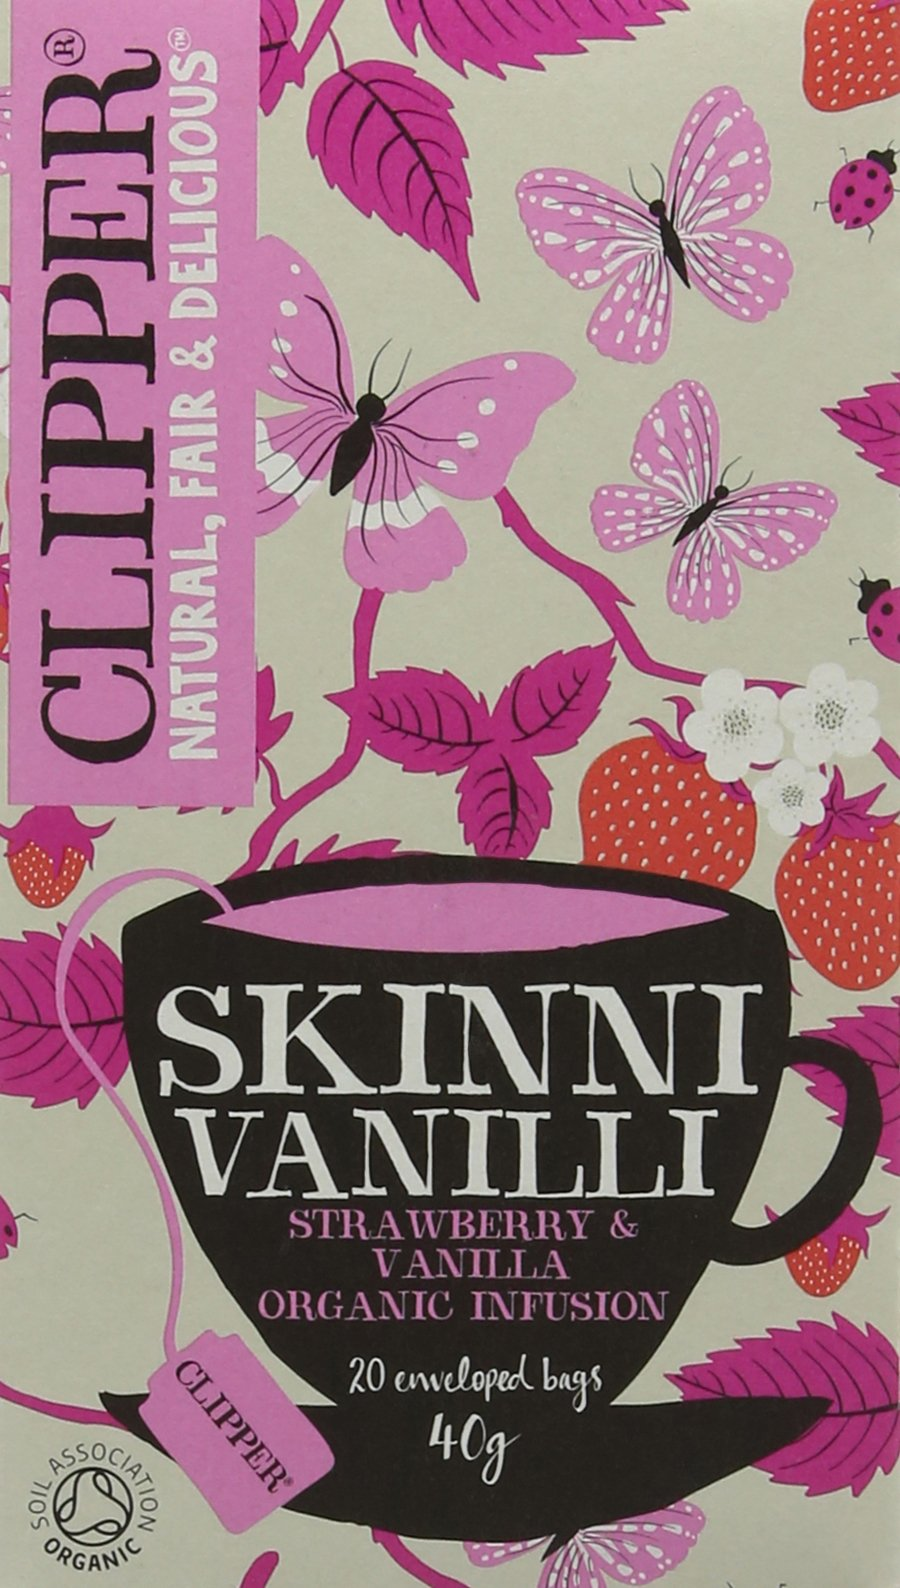 Clipper organic skinni tea bundle (soil association) (rooibos tea) (6 packs of 20 bags) (120 bags) (a floral, fruity tea with aromas of hibiscus, liquorice, rosehip, strawberry) (brews in 3-5 minutes)